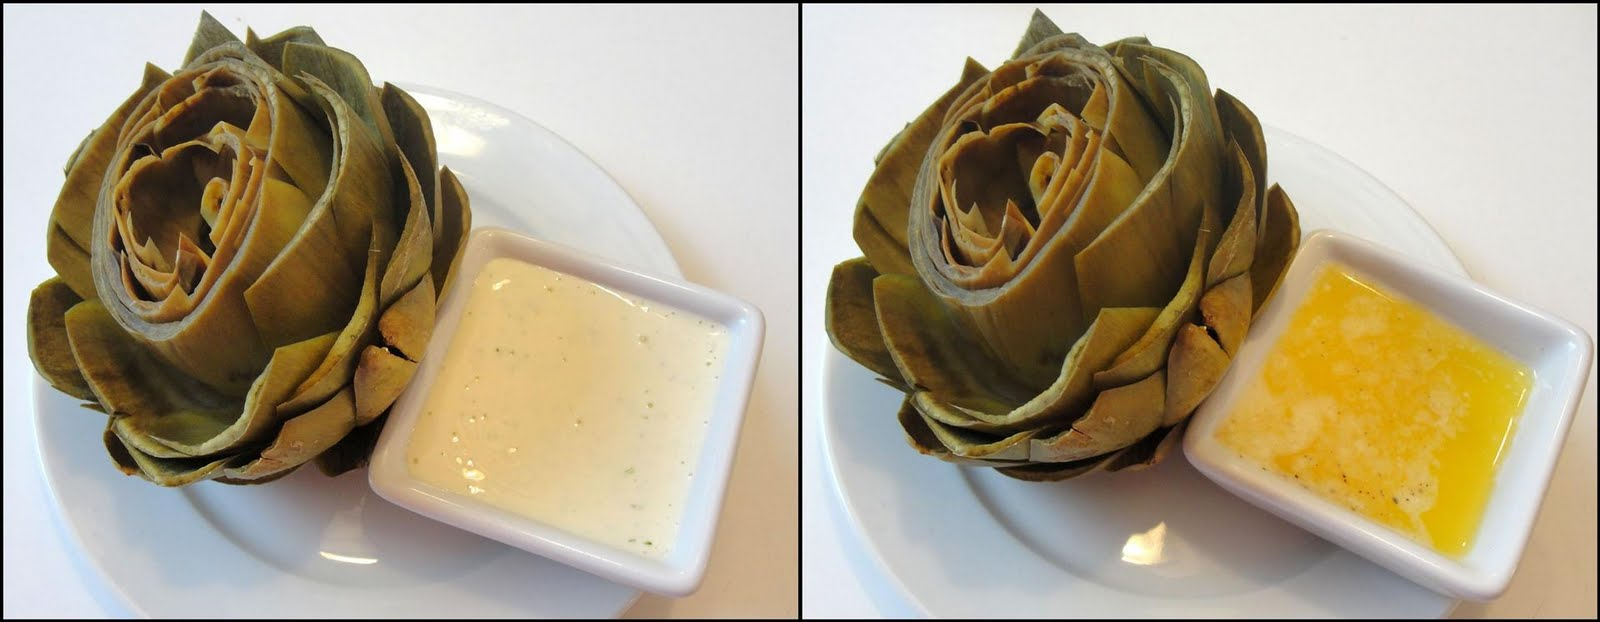 How long to cook and artichoke